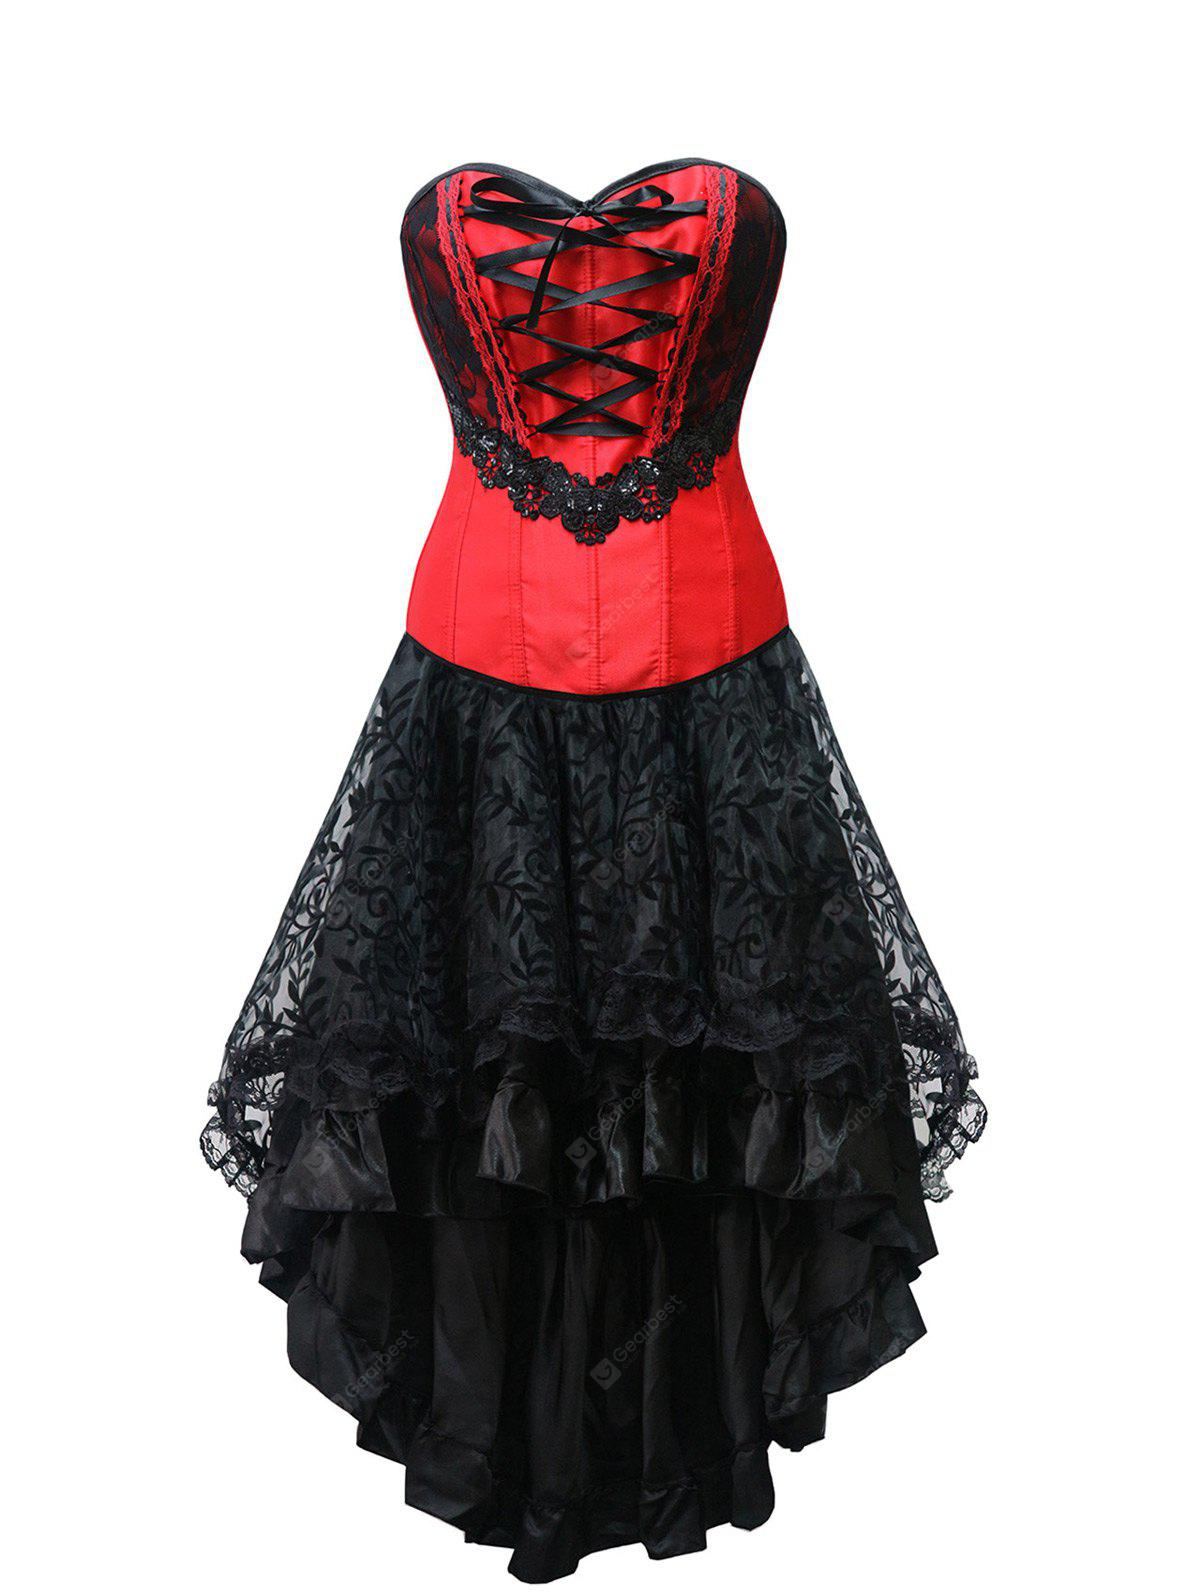 Strapless Lace Up High Low Corset Dress